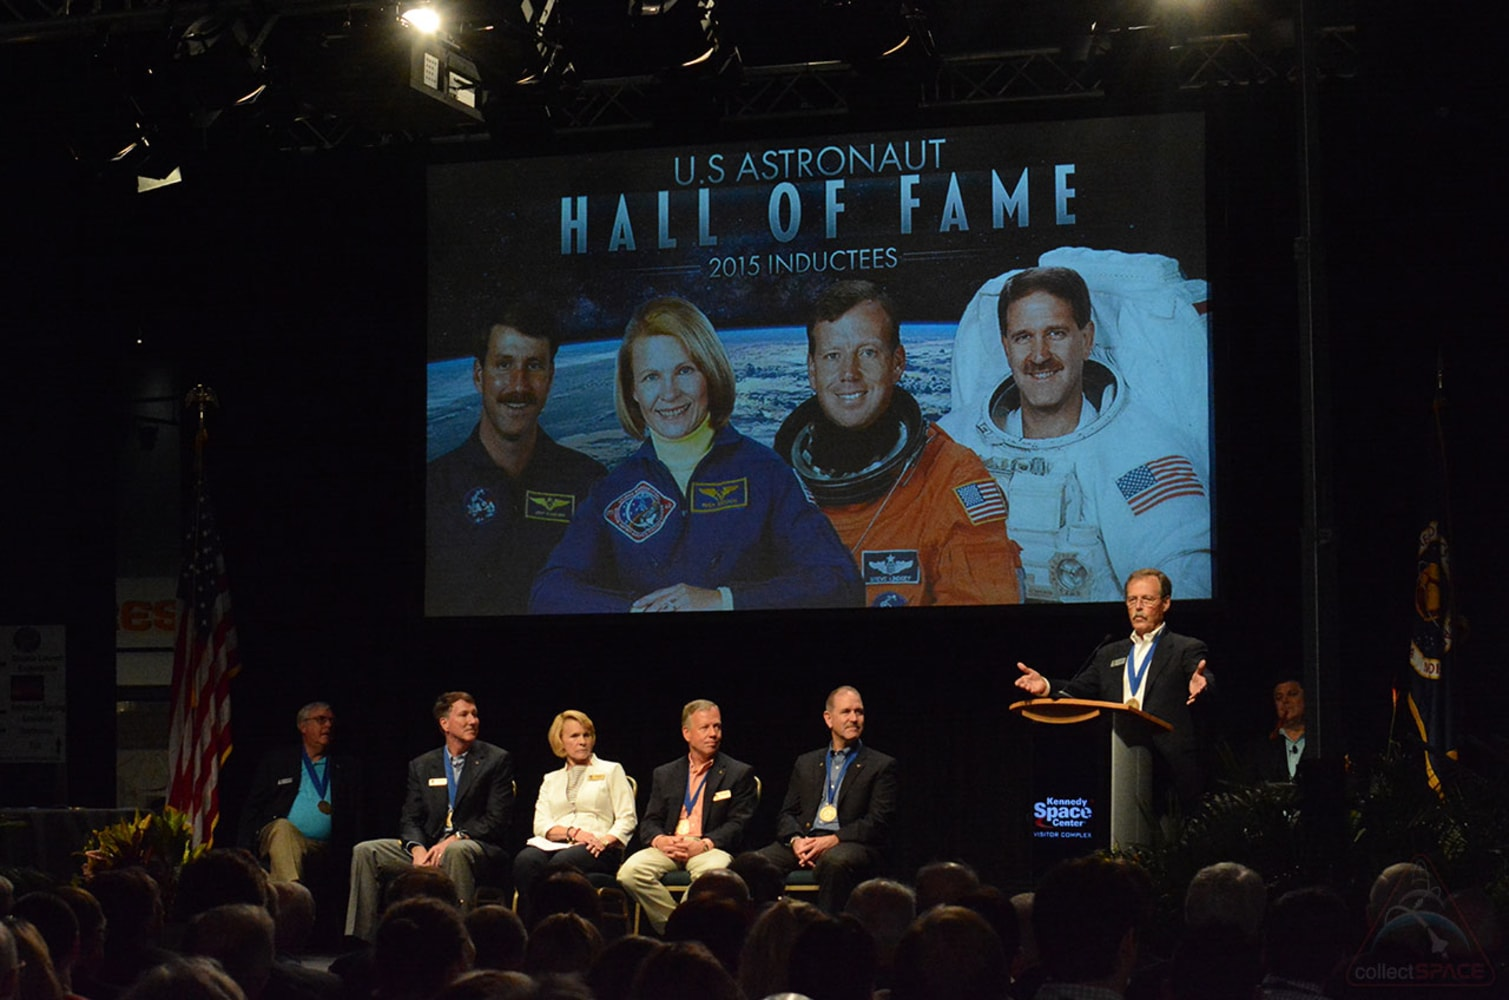 astronaut hall of fame members - photo #13